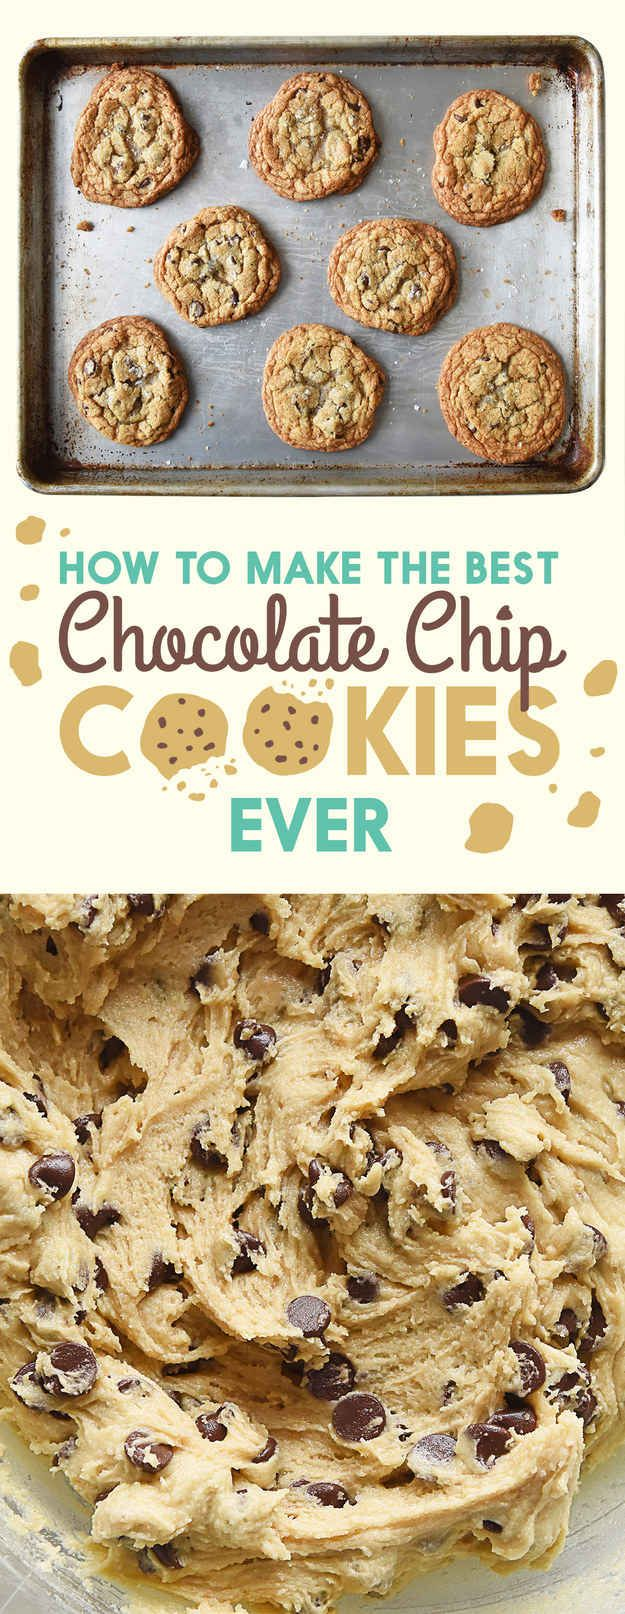 Here's How To Make The World's Greatest Chocolate Chip Cookies. This is literally the best recipe ever!